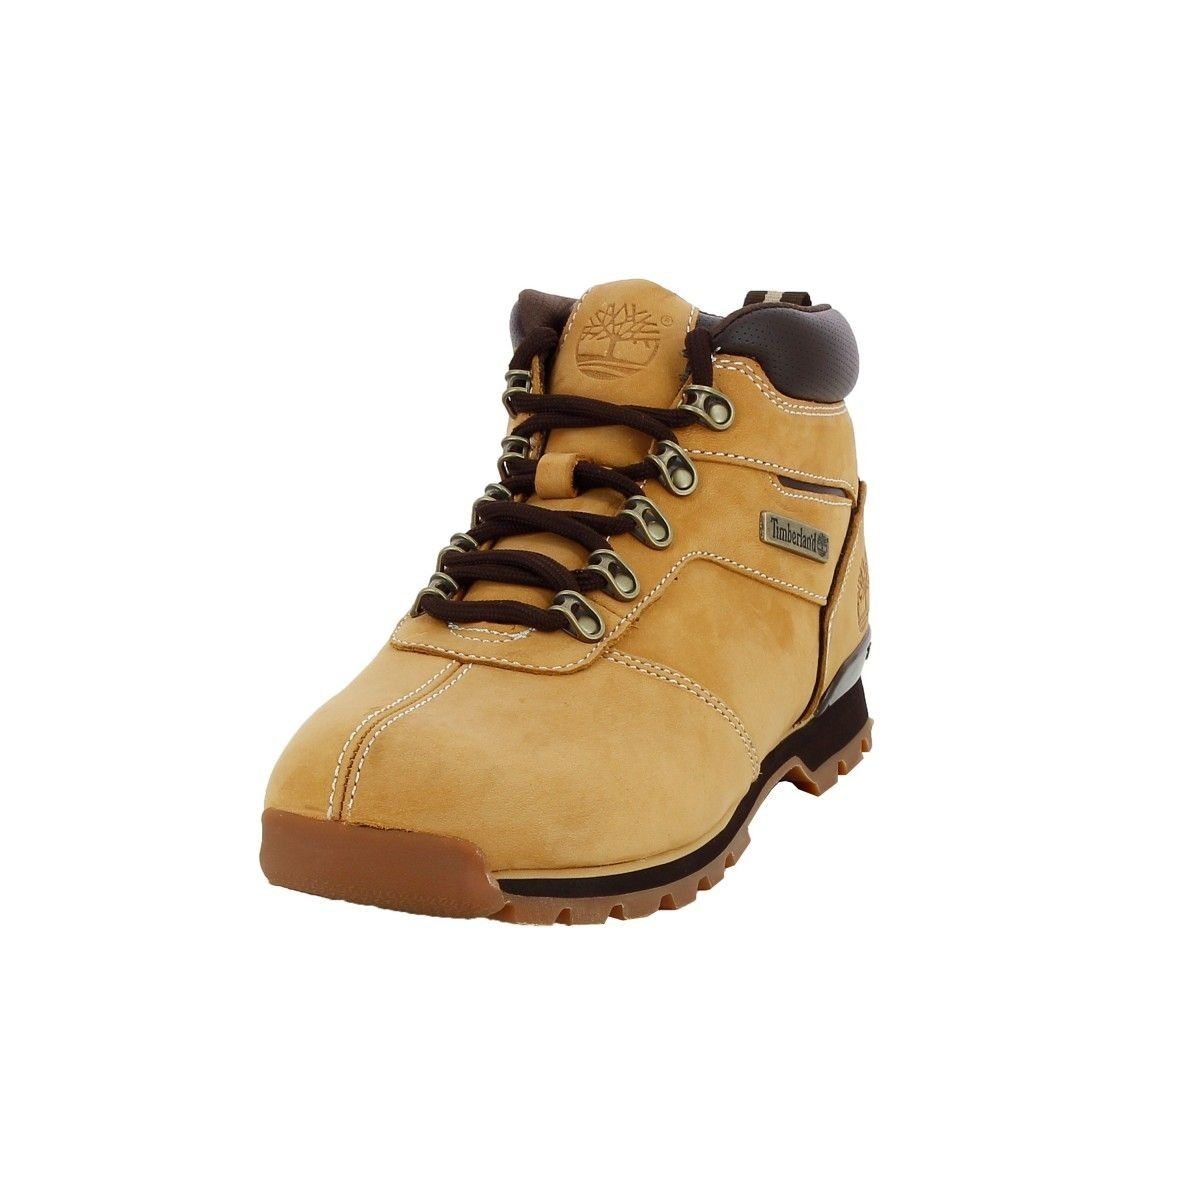 en 2 cuir Bottines et SPLITROCK Boot 2019BottesBottes dxWorCBe